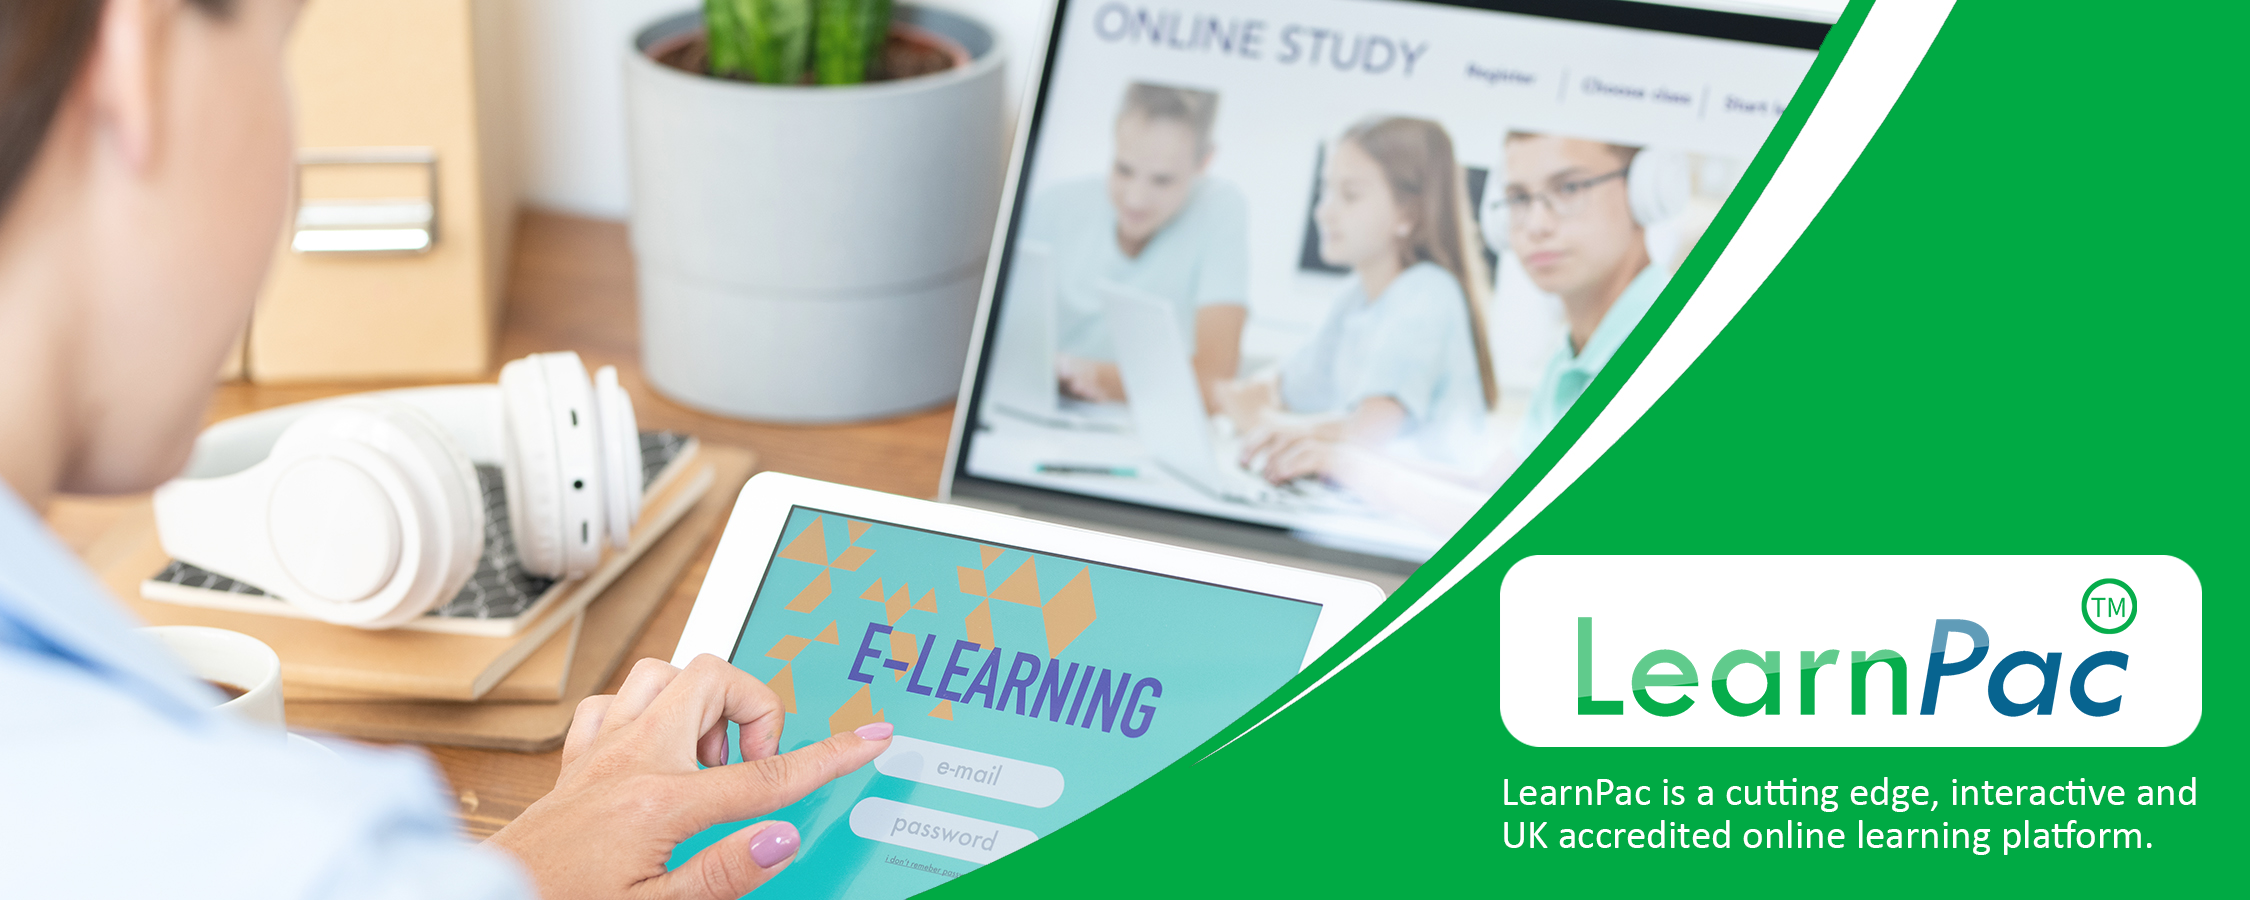 Coping with Stress at Work - Online Learning Courses - E-Learning Courses - LearnPac Systems UK -